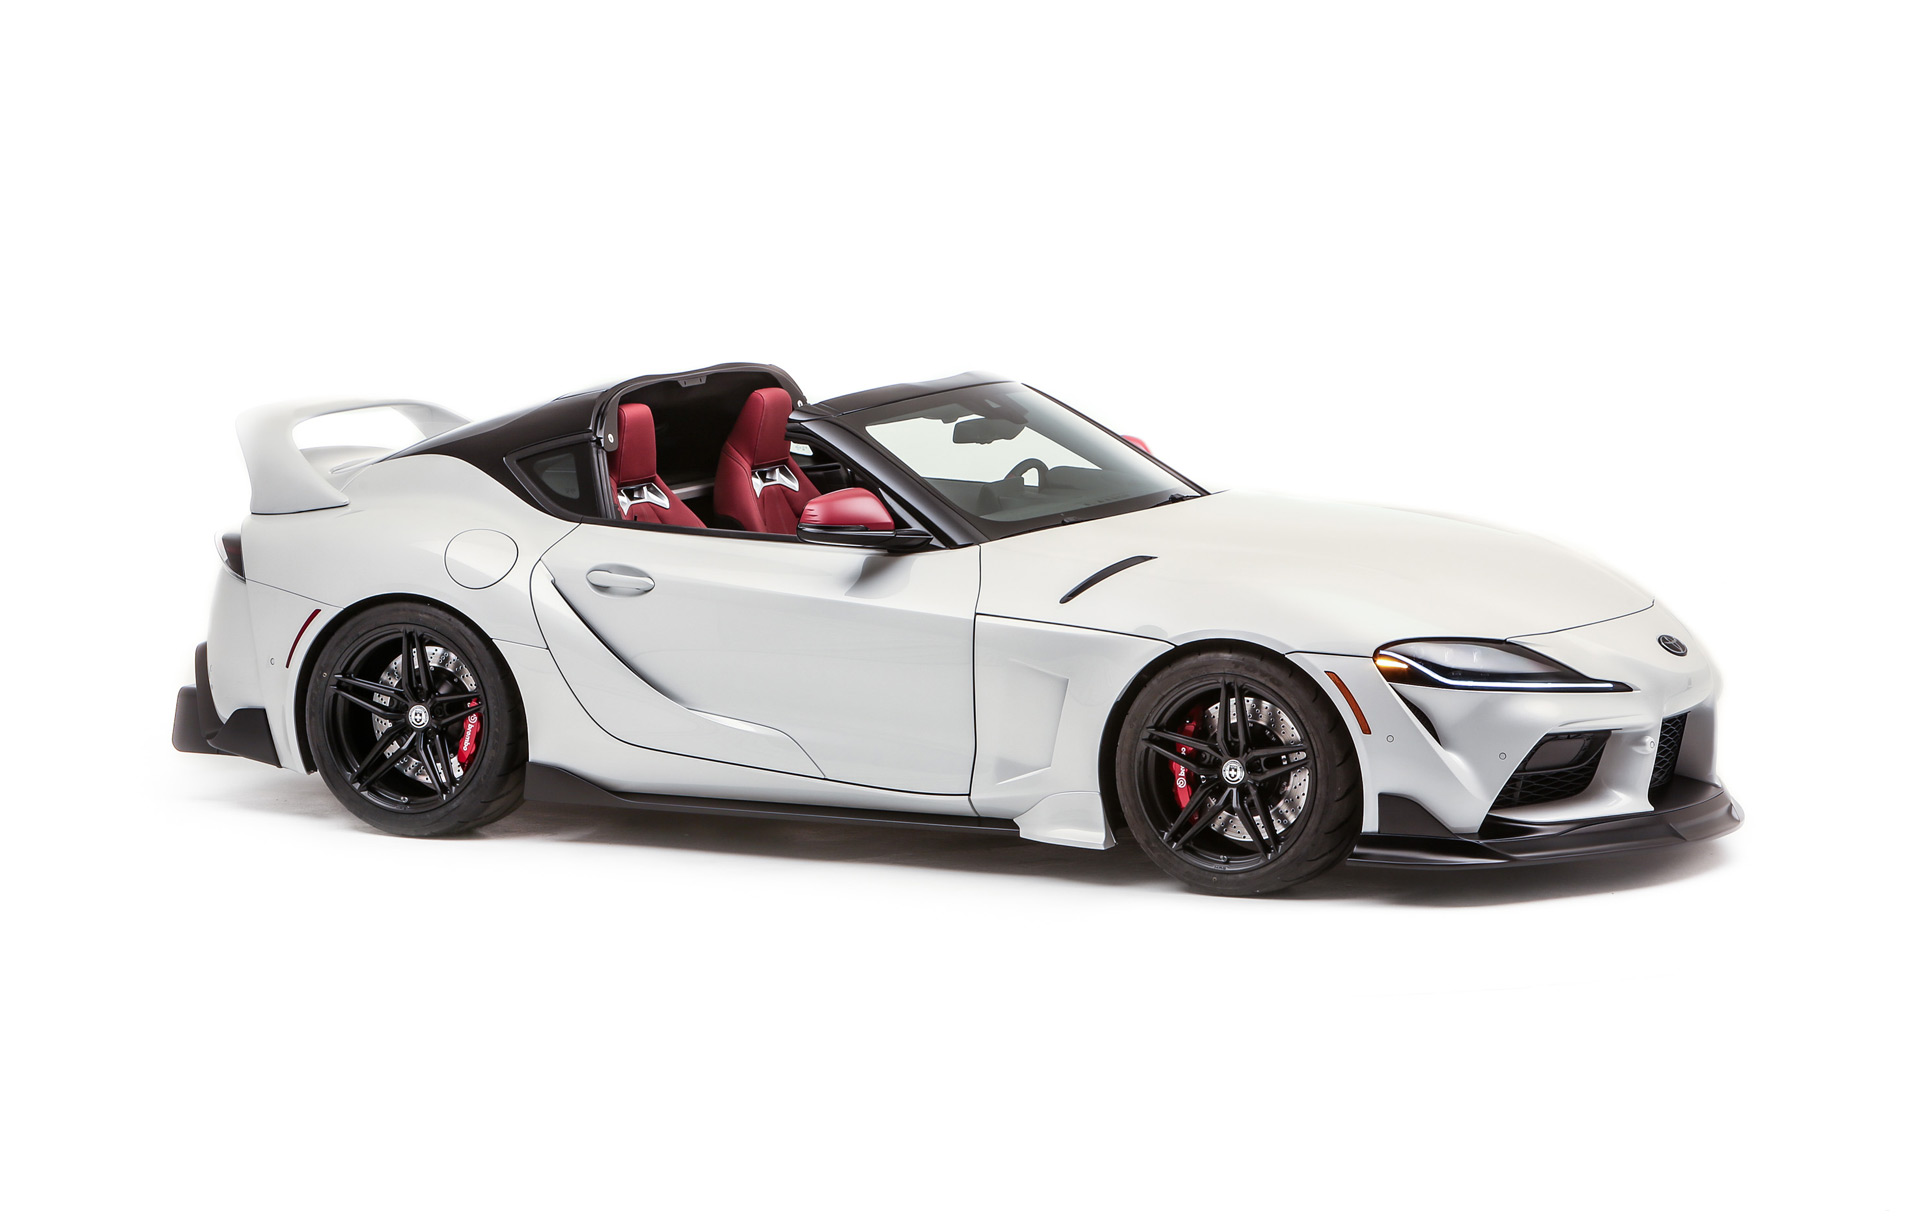 Toyota Supra targa concept developed for SEMA is just begging to be built